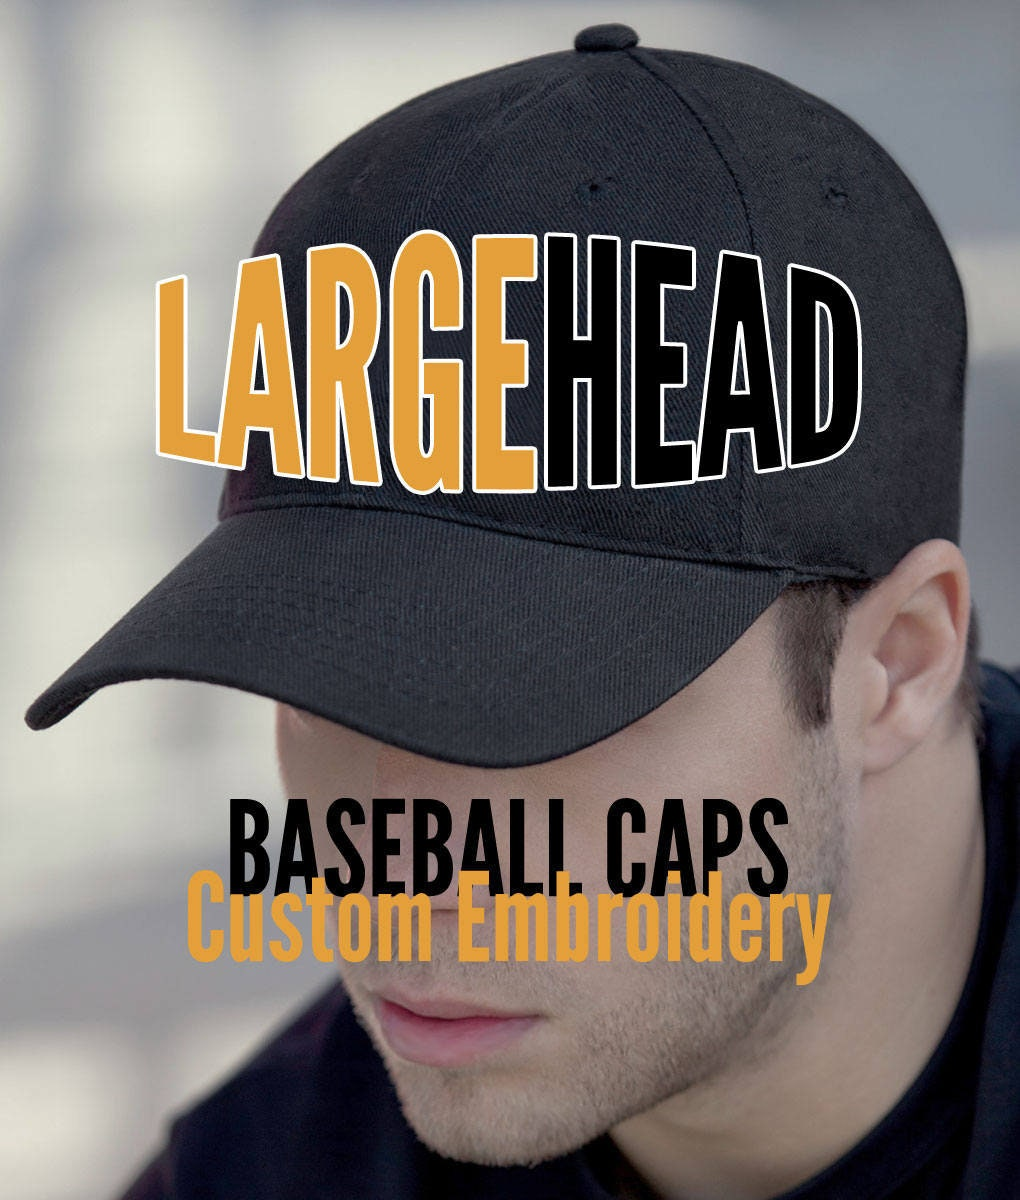 b0e98cbbc27 Large Size Head Custom Embroidery on an Oversize Adjustable Structured Full  Fit Classic Black or Navy Baseball Cap + Personalization Options